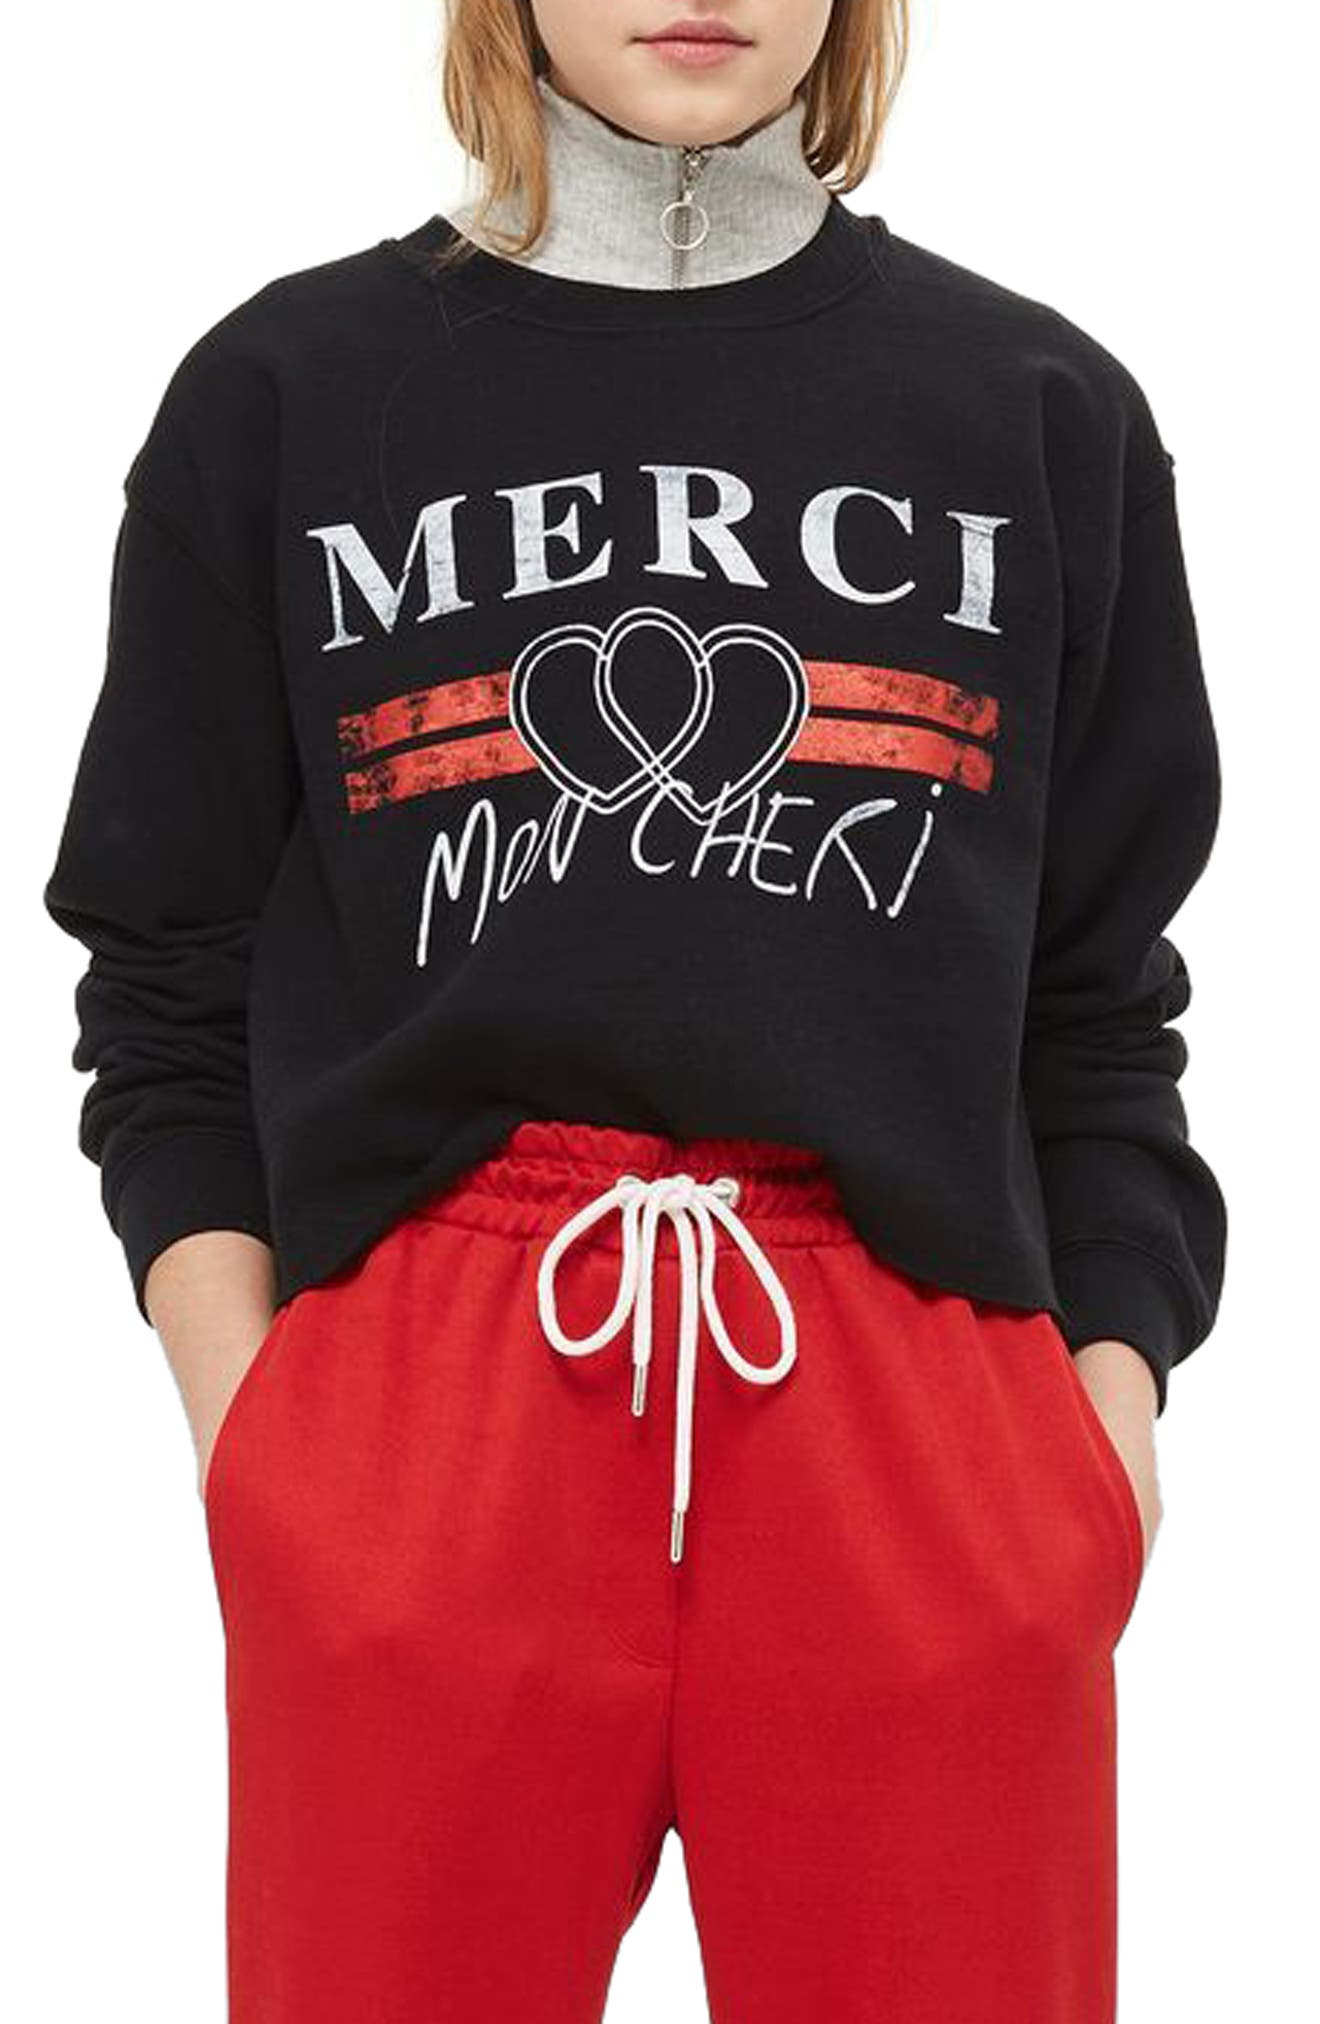 Merci Crop Sweatshirt,                         Main,                         color, Black Multi